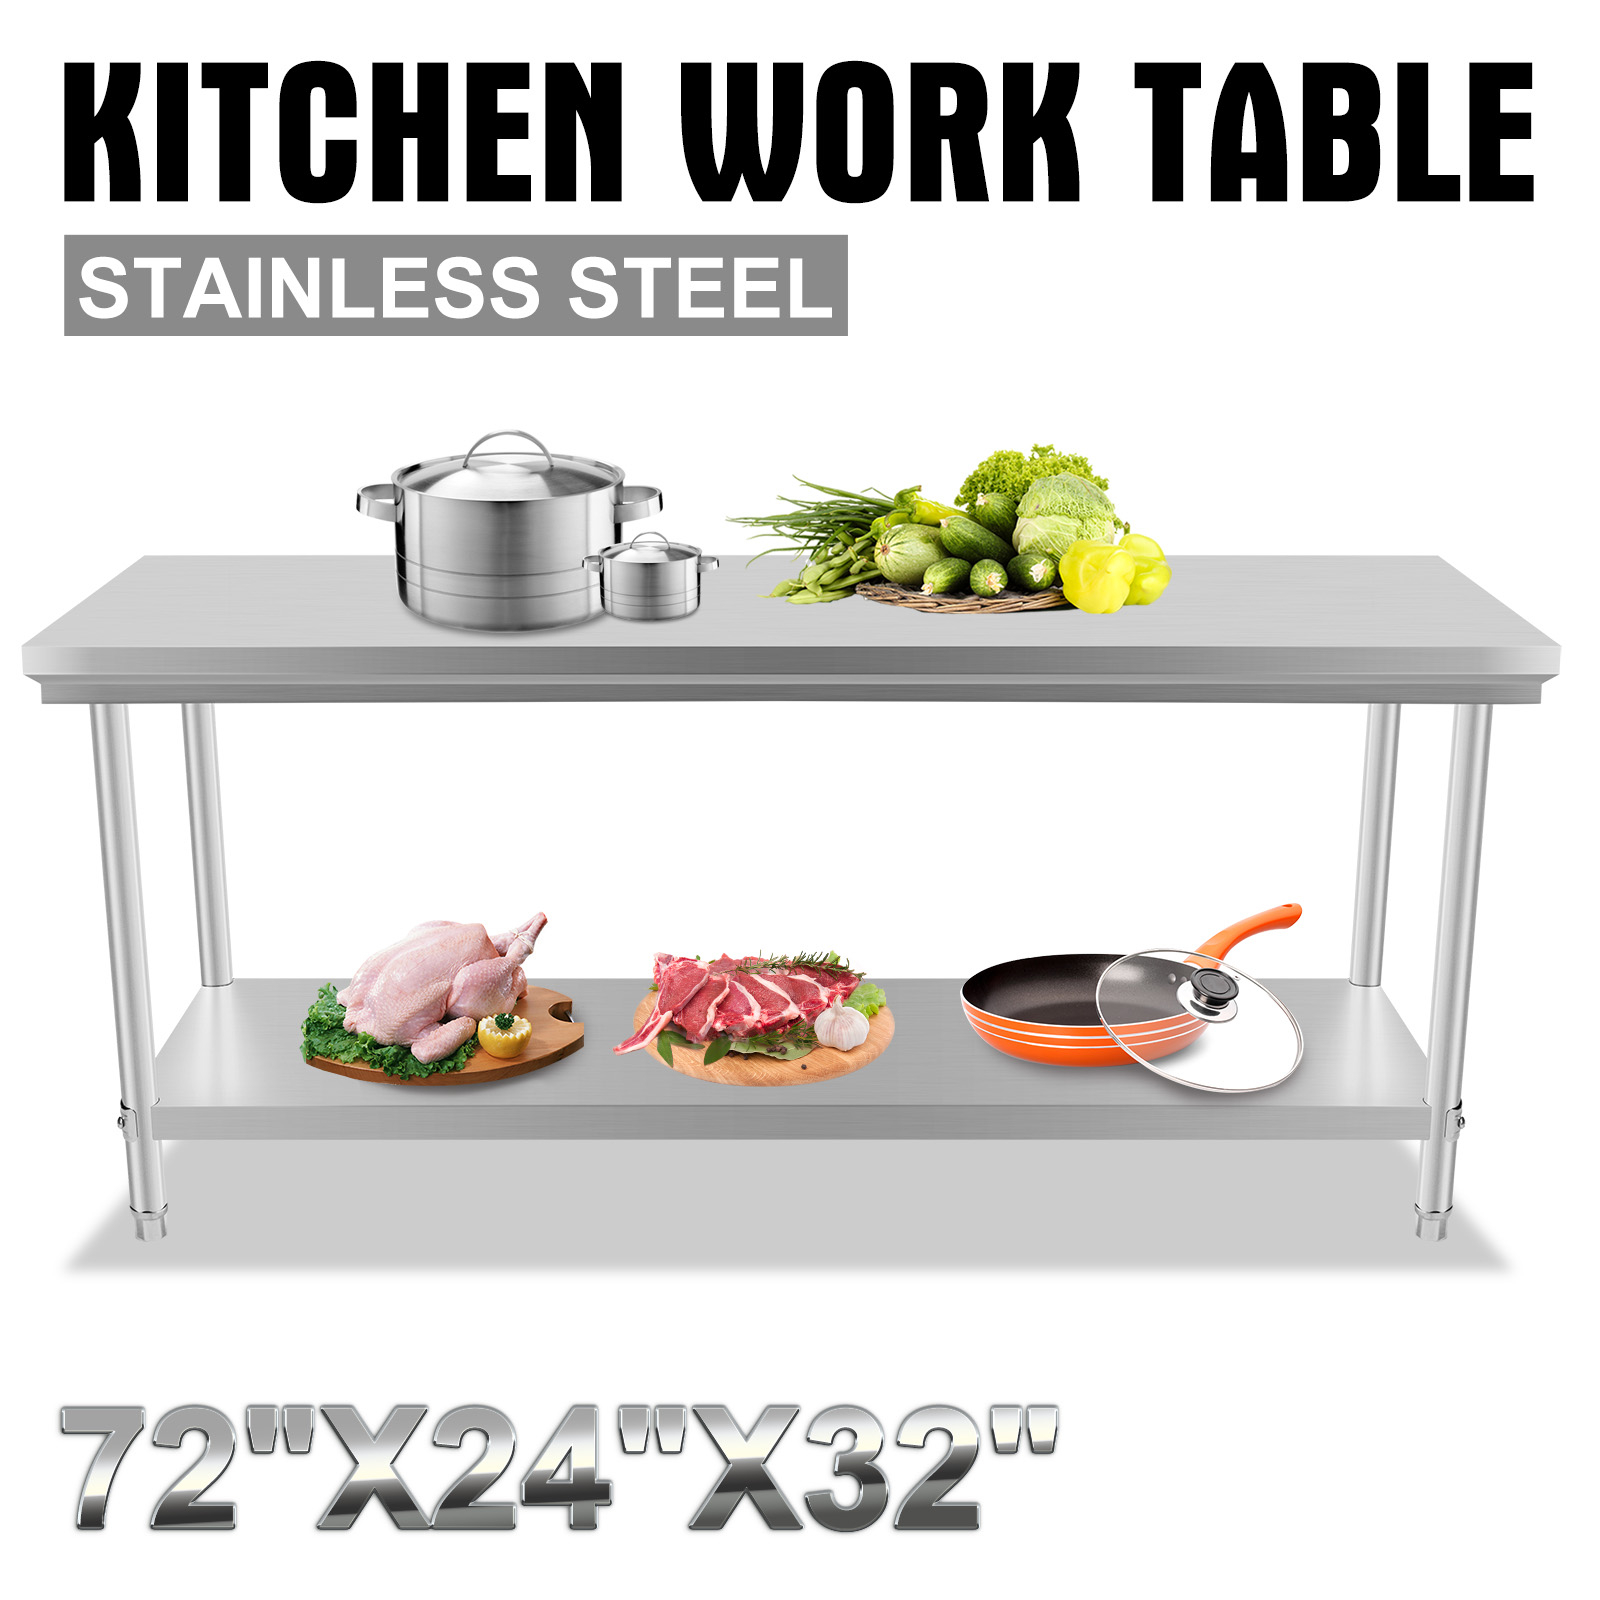 Restaurant Kitchen Work Tables new stainless steel kitchen restaurant work bench food prep table